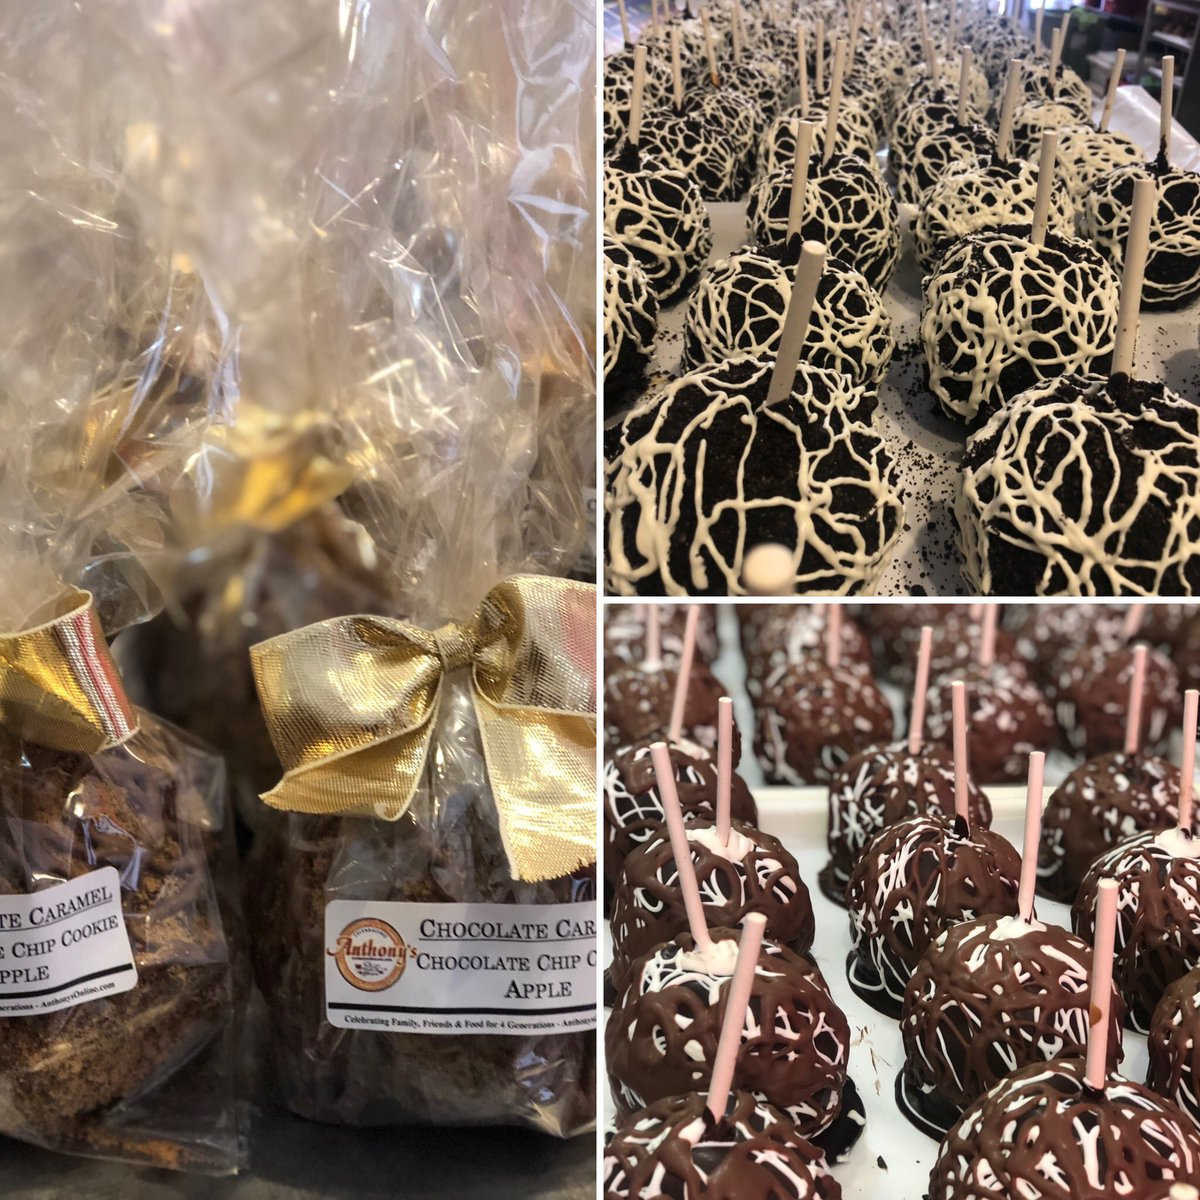 An apple a day. We're sure they meant Anthony's Chocolate Caramel Apples! Hand dipped in creamy caramel, smothered in chocolate, rolled in toppings & hand-drizzled in more chocolate.  #anthonys #italiancoffeehouse #chocolatehouse #gelateria #9thstreet #italianmarket #philly https://t.co/3Jq4k4ZECT